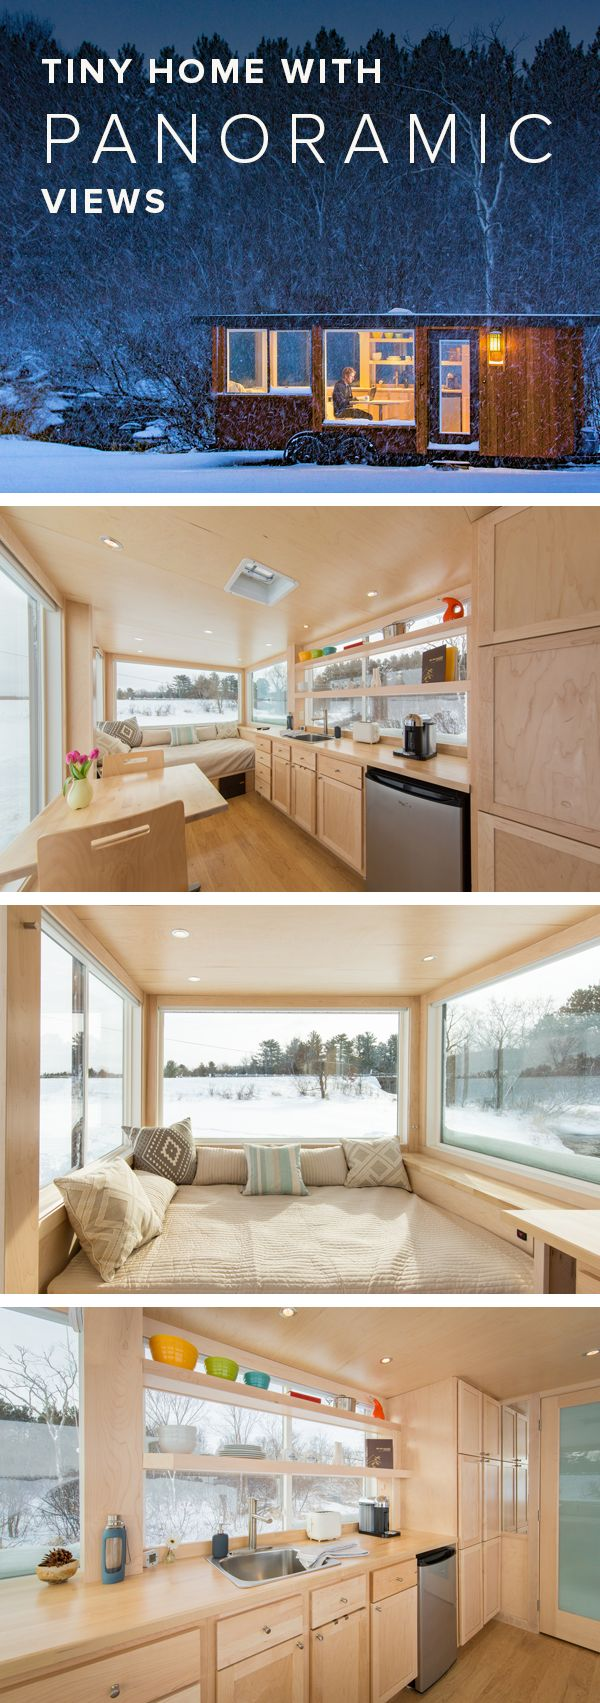 Small Home Big Views See Inside This Stunning Tiny Home Tiny House Living Tiny House Inspiration Tiny House Movement